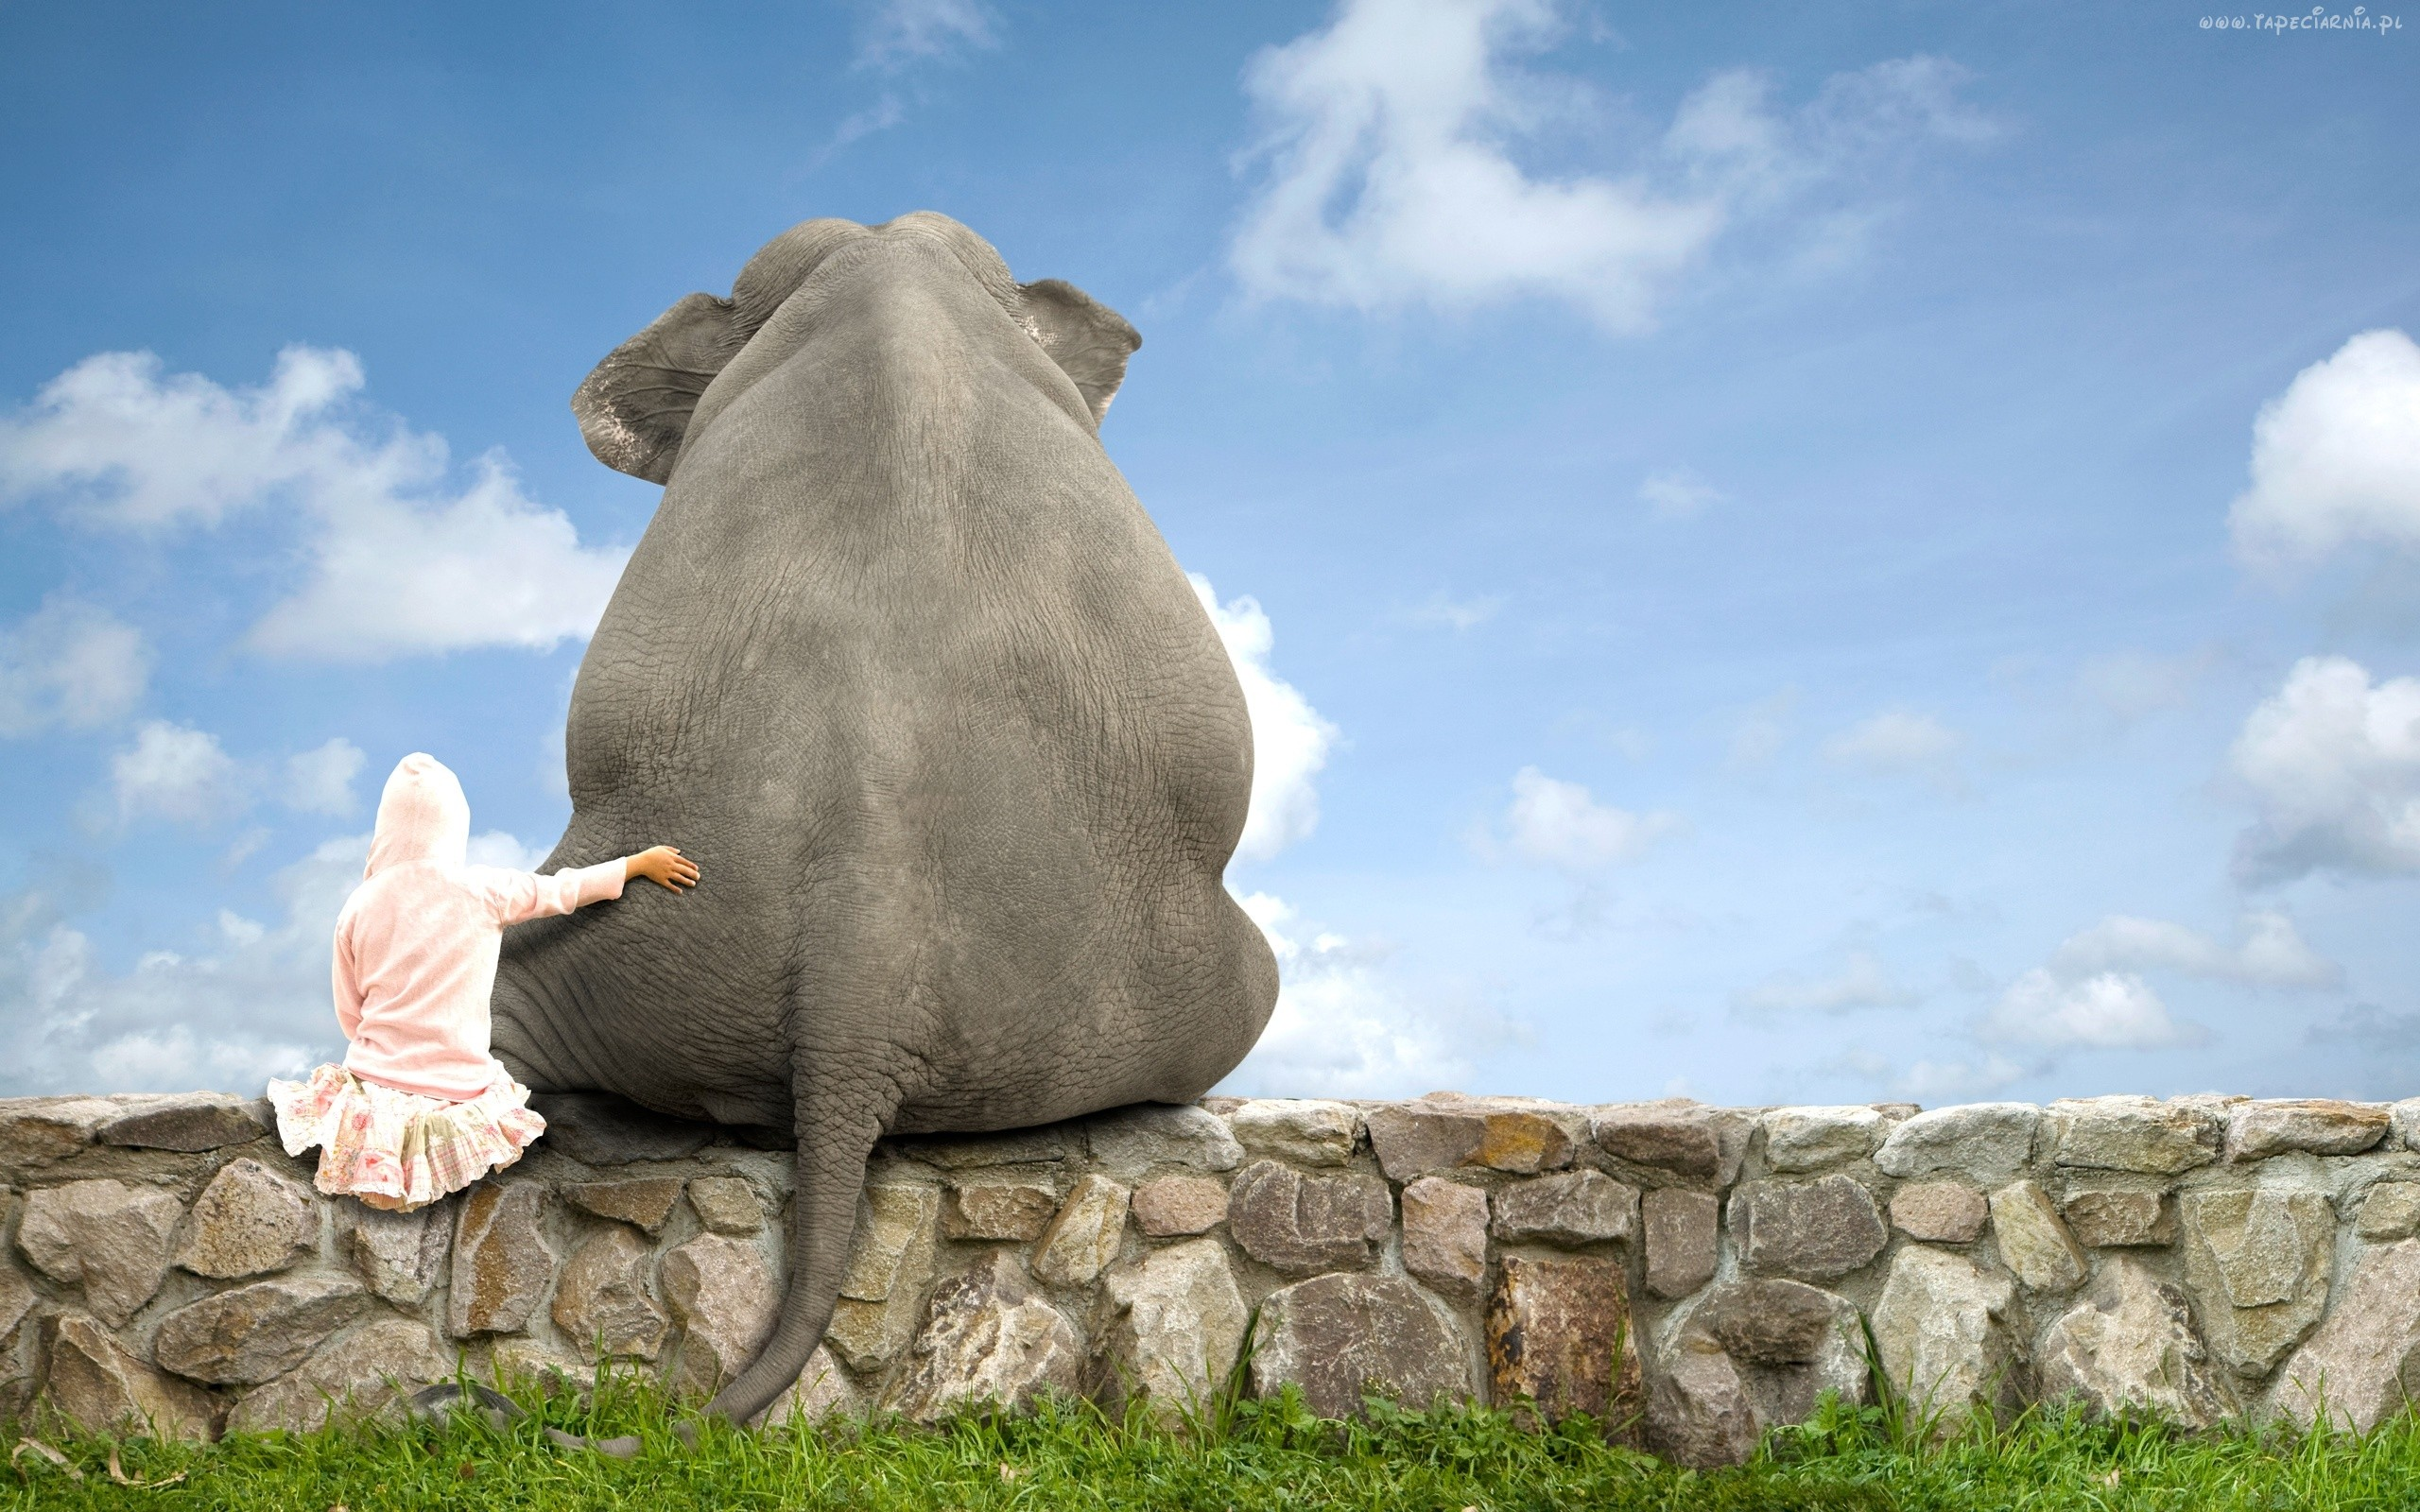 Cute Elephant Friend, HD Animals, 4k Wallpapers, Images ...